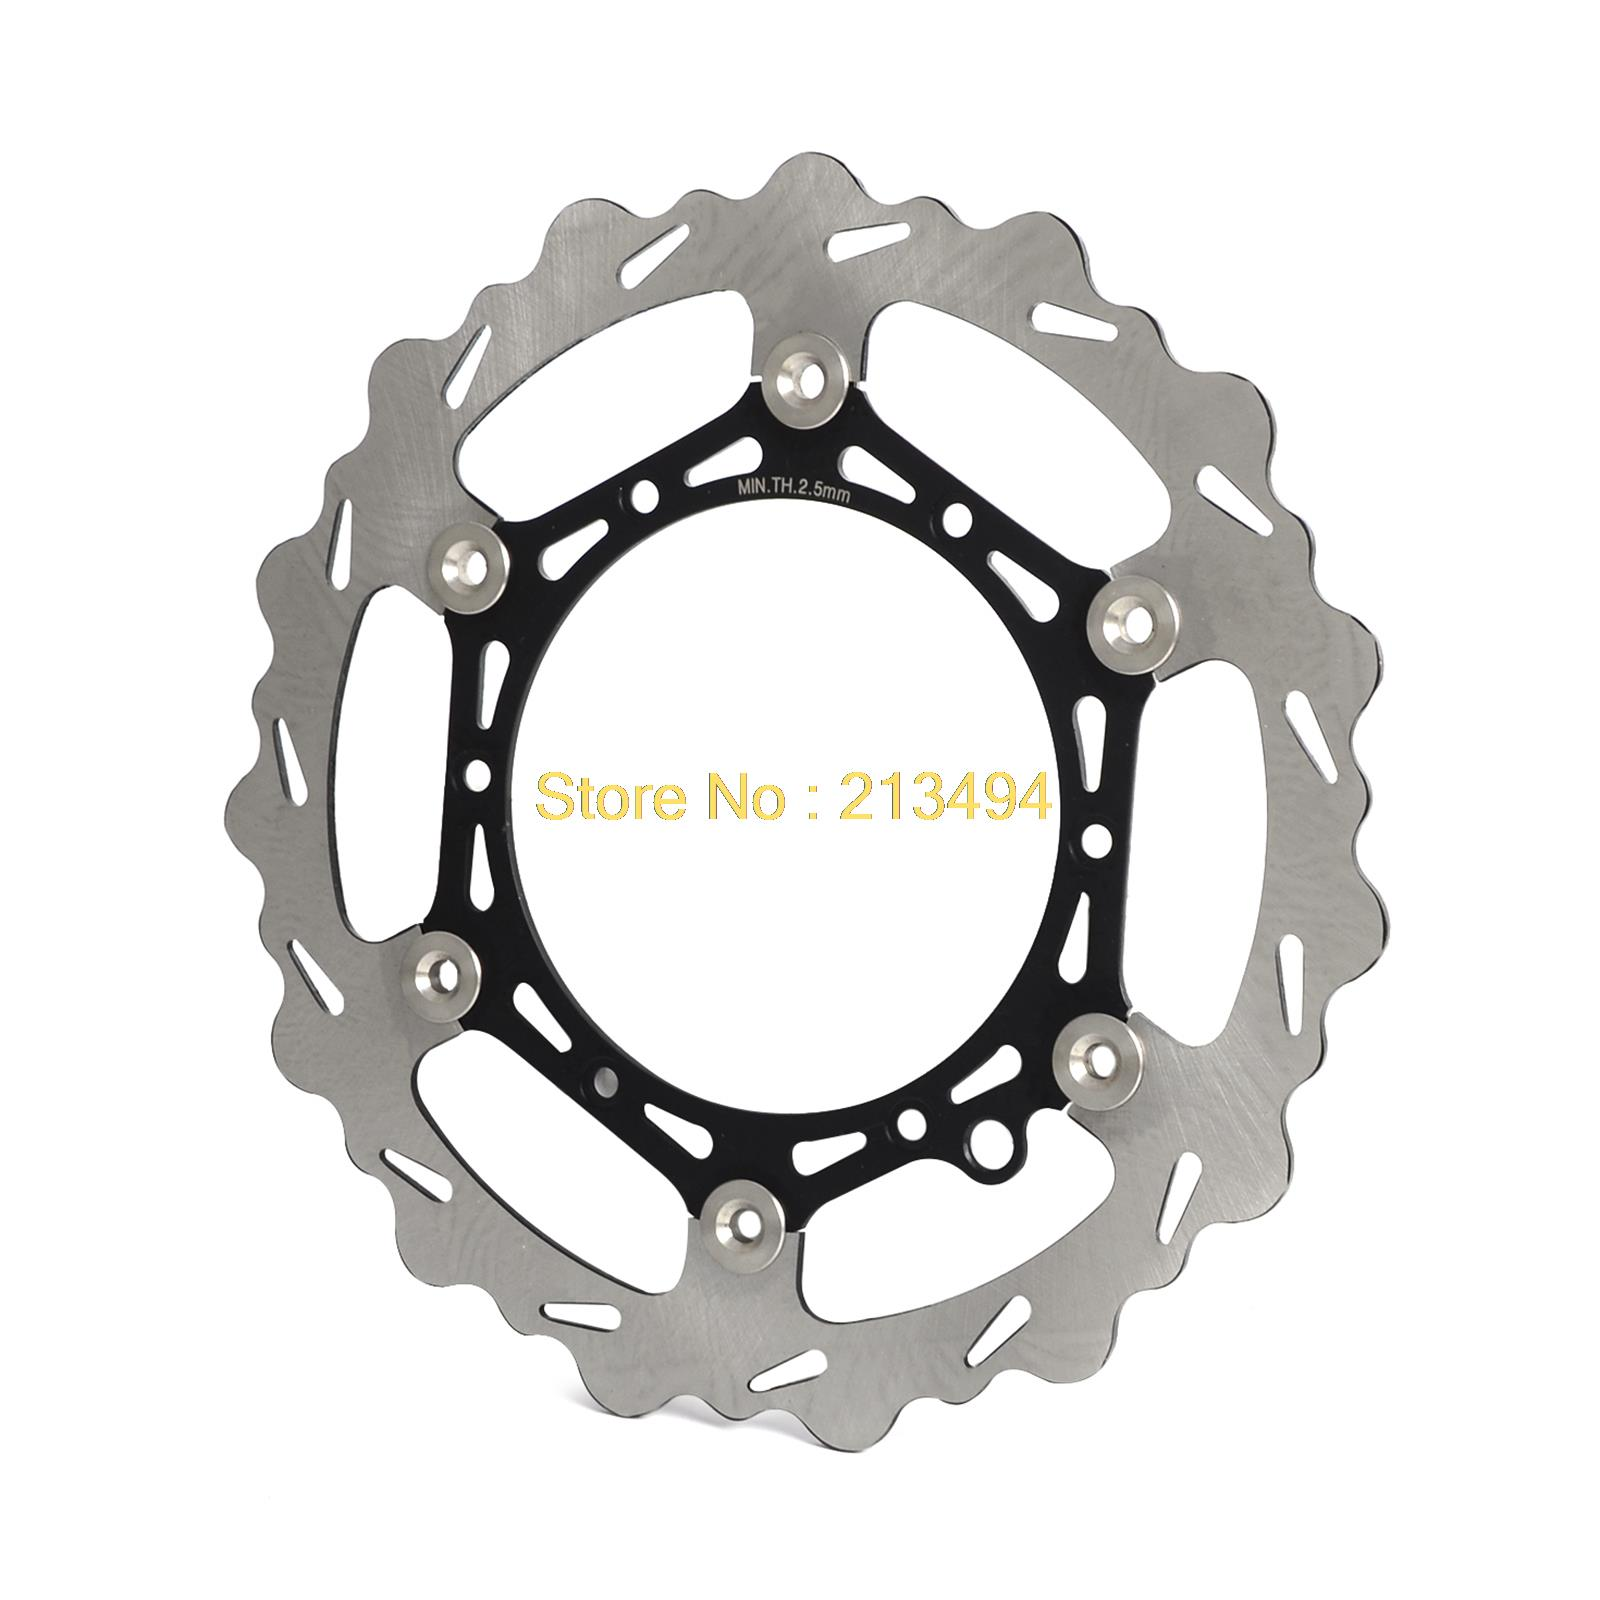 NICECNC Front Brake Disc Rotor For KTM 125 200 250 300 350 380 400 450 525 530 540 600 625 SX SXF EXC XC SXC XCW MXC XCF SXS front brake disc rotor for ktm 380 exc 1998 1999 2000 2001 2002 sx mxc 1998 2001 400 egs exc g xc w 2007 2008 2009 07 08 09